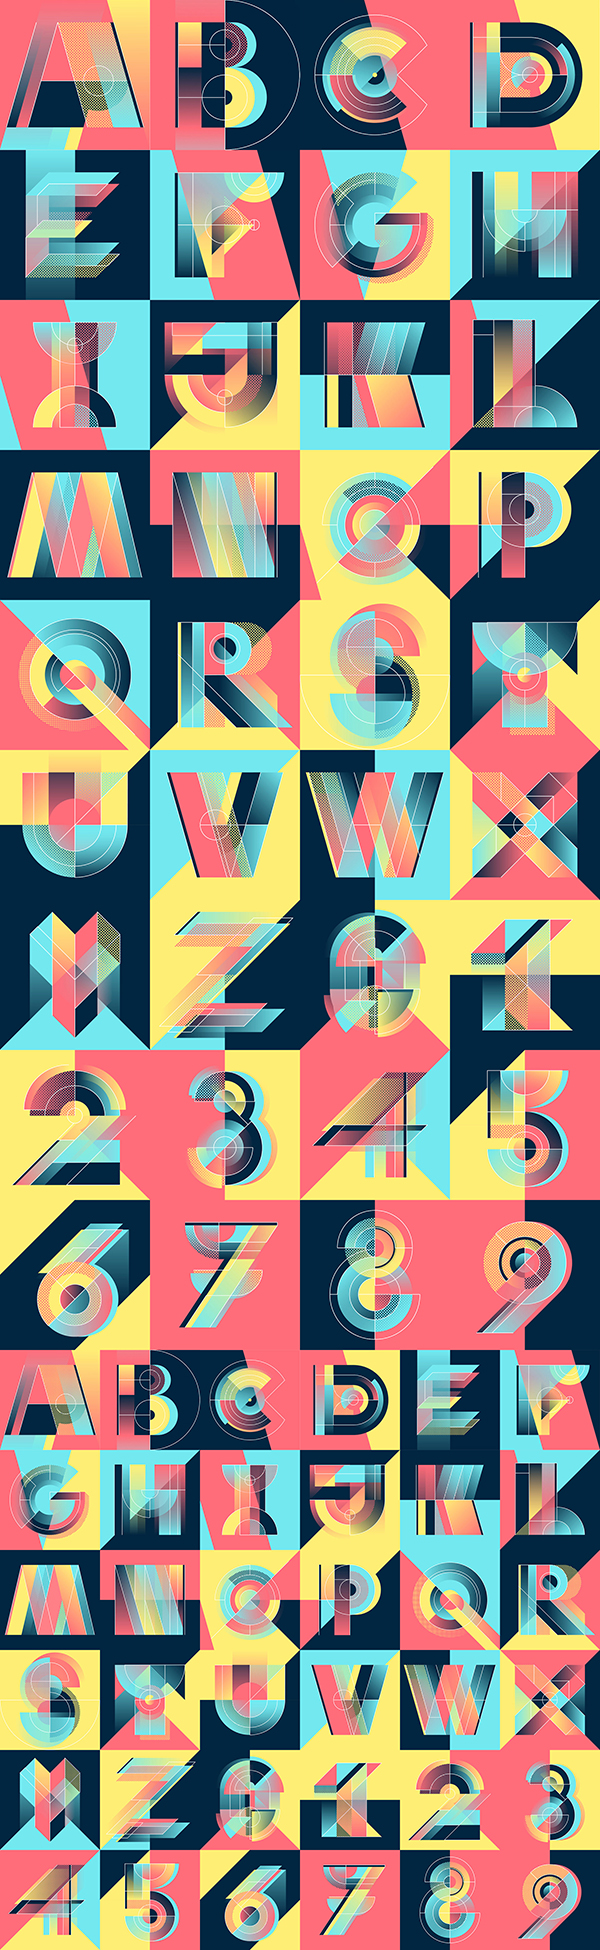 30 Remarkable Lettering and Typography Design for Inspiration - 13